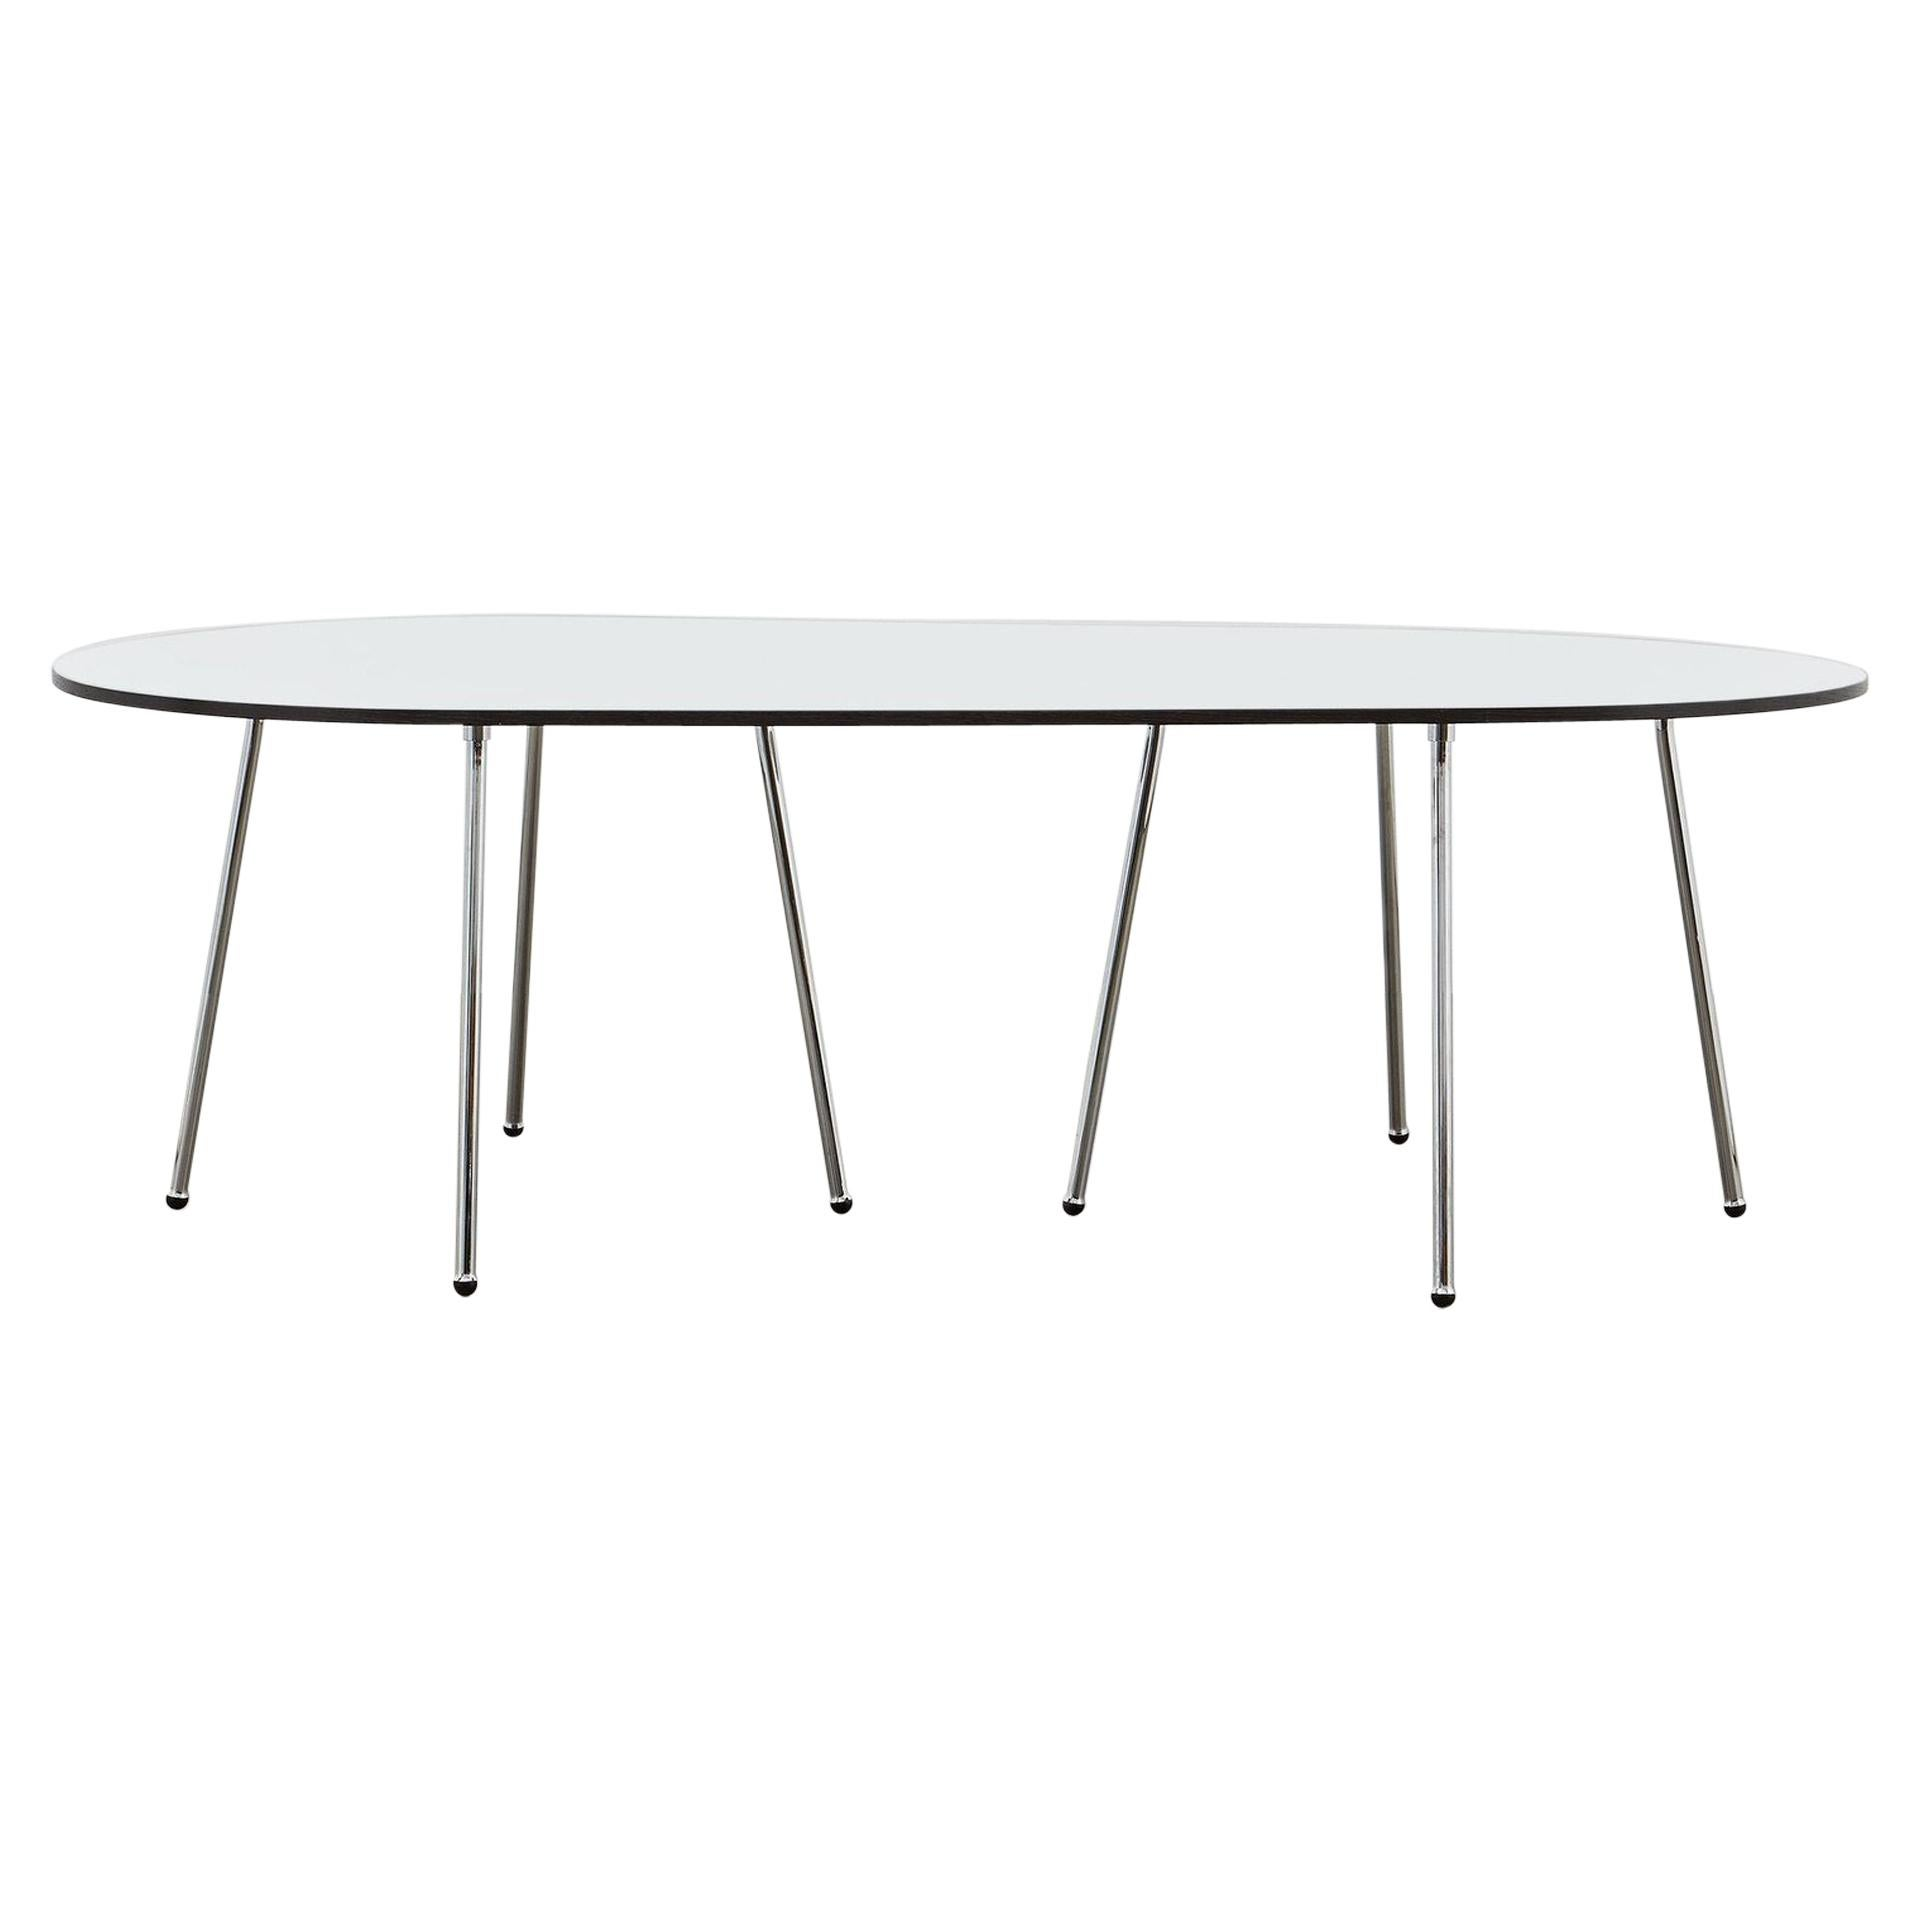 PH Dining Table, Chrome, Laminated Plate with Black Abs Edge